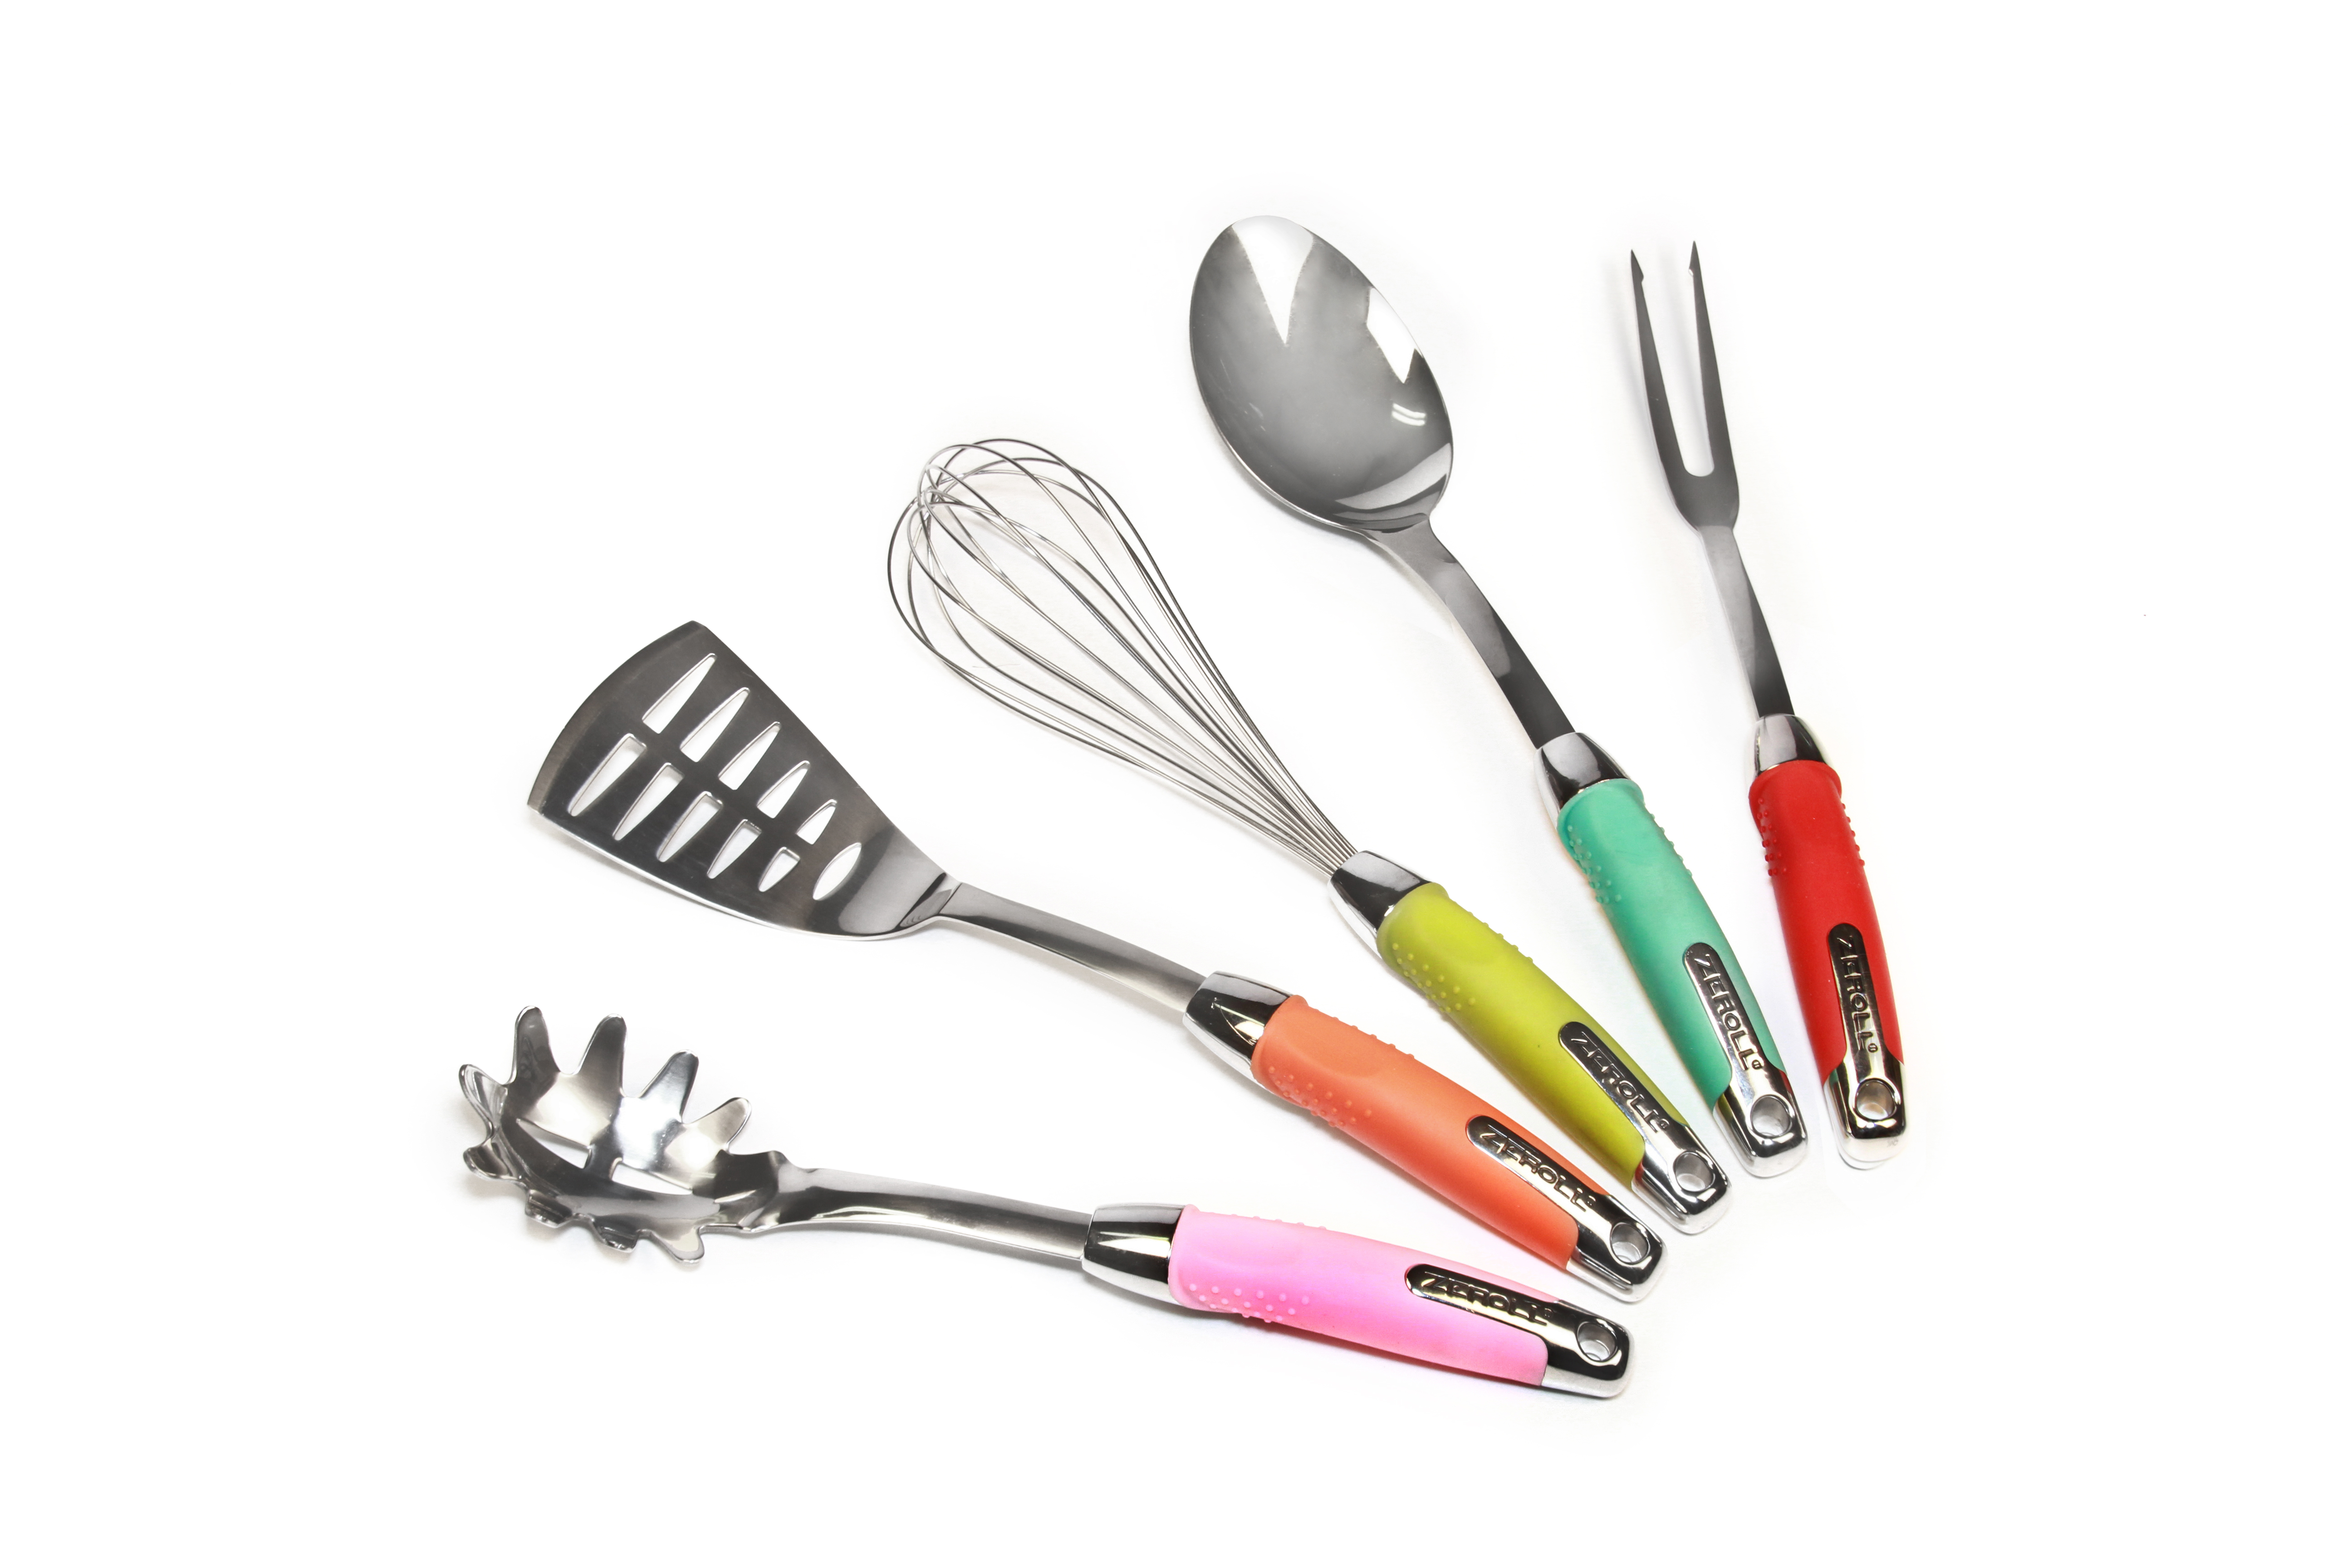 Kitchenware Options for Allergy-Free Cooking | Kitchenware News ...